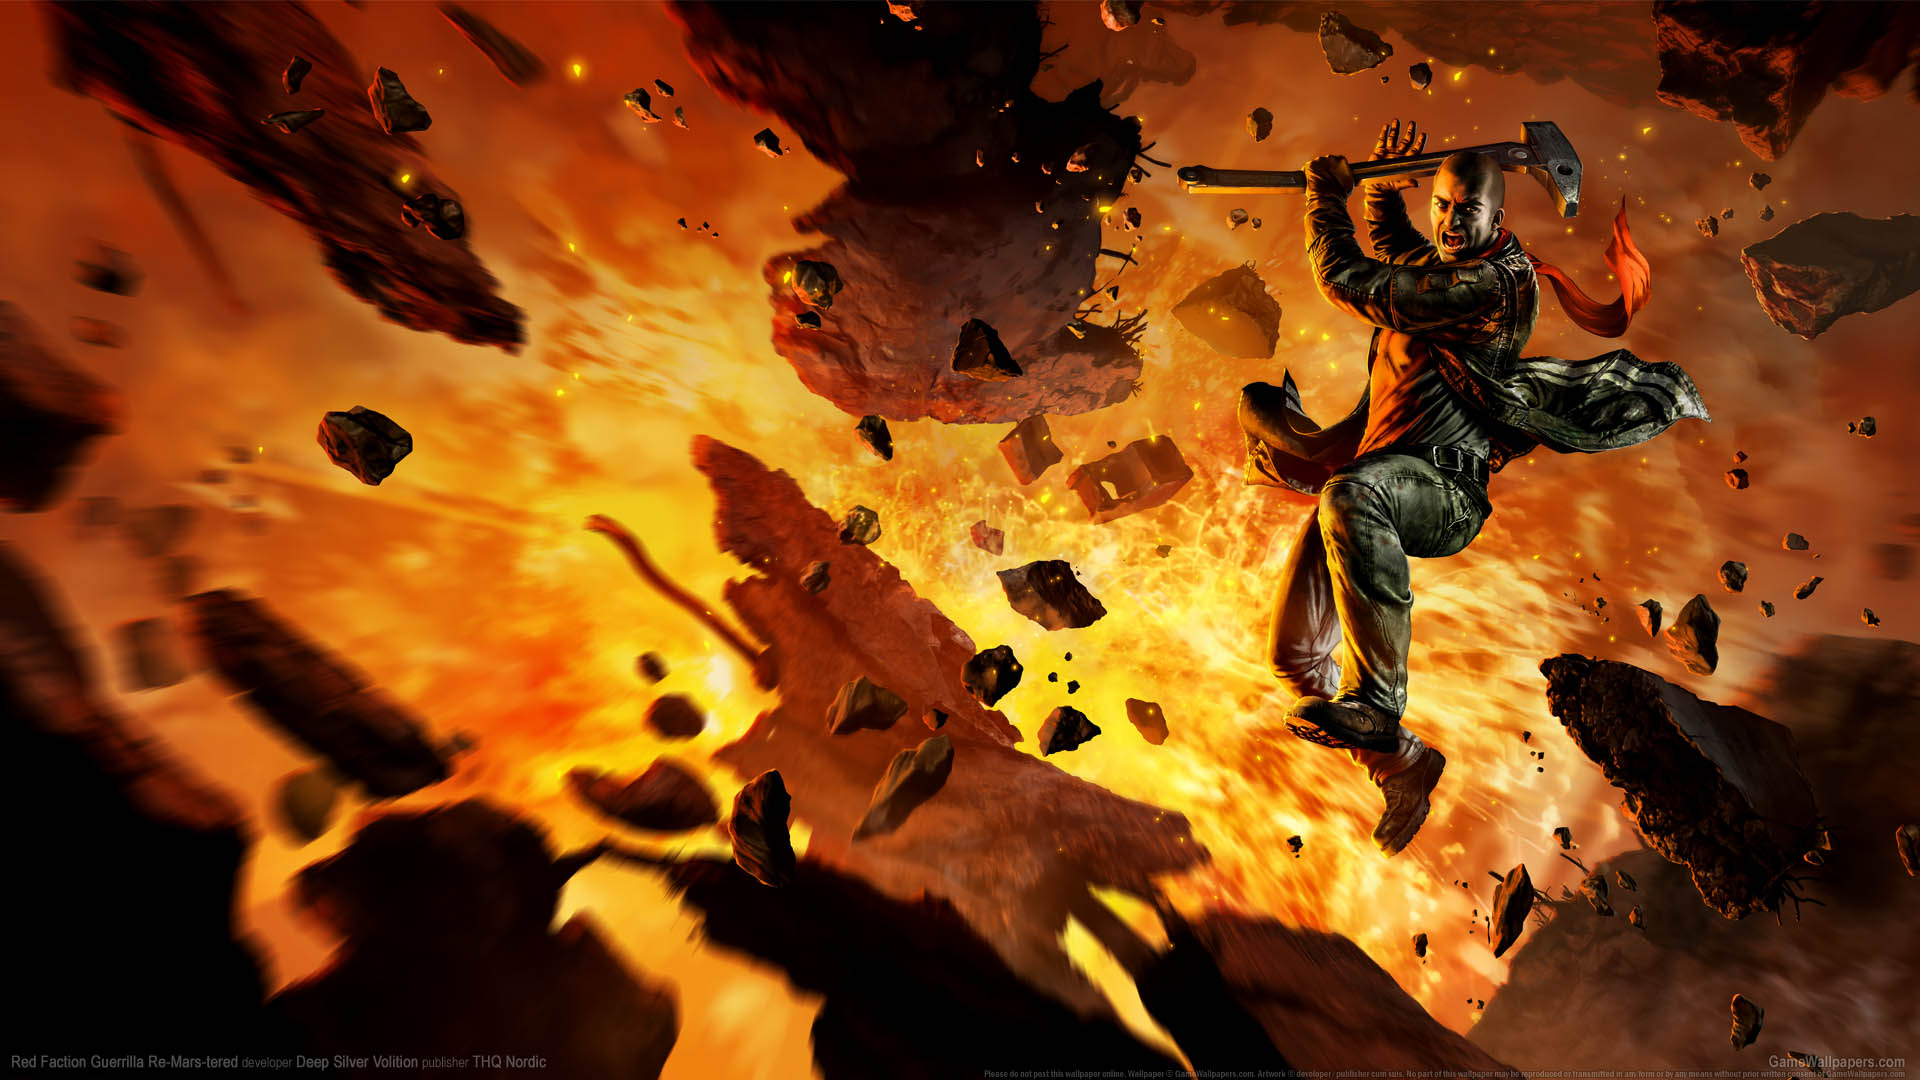 Red-Faction-Guerrilla-Re-Mars-tered-PC-Wallpaper.jpg - Red Faction: Guerrilla